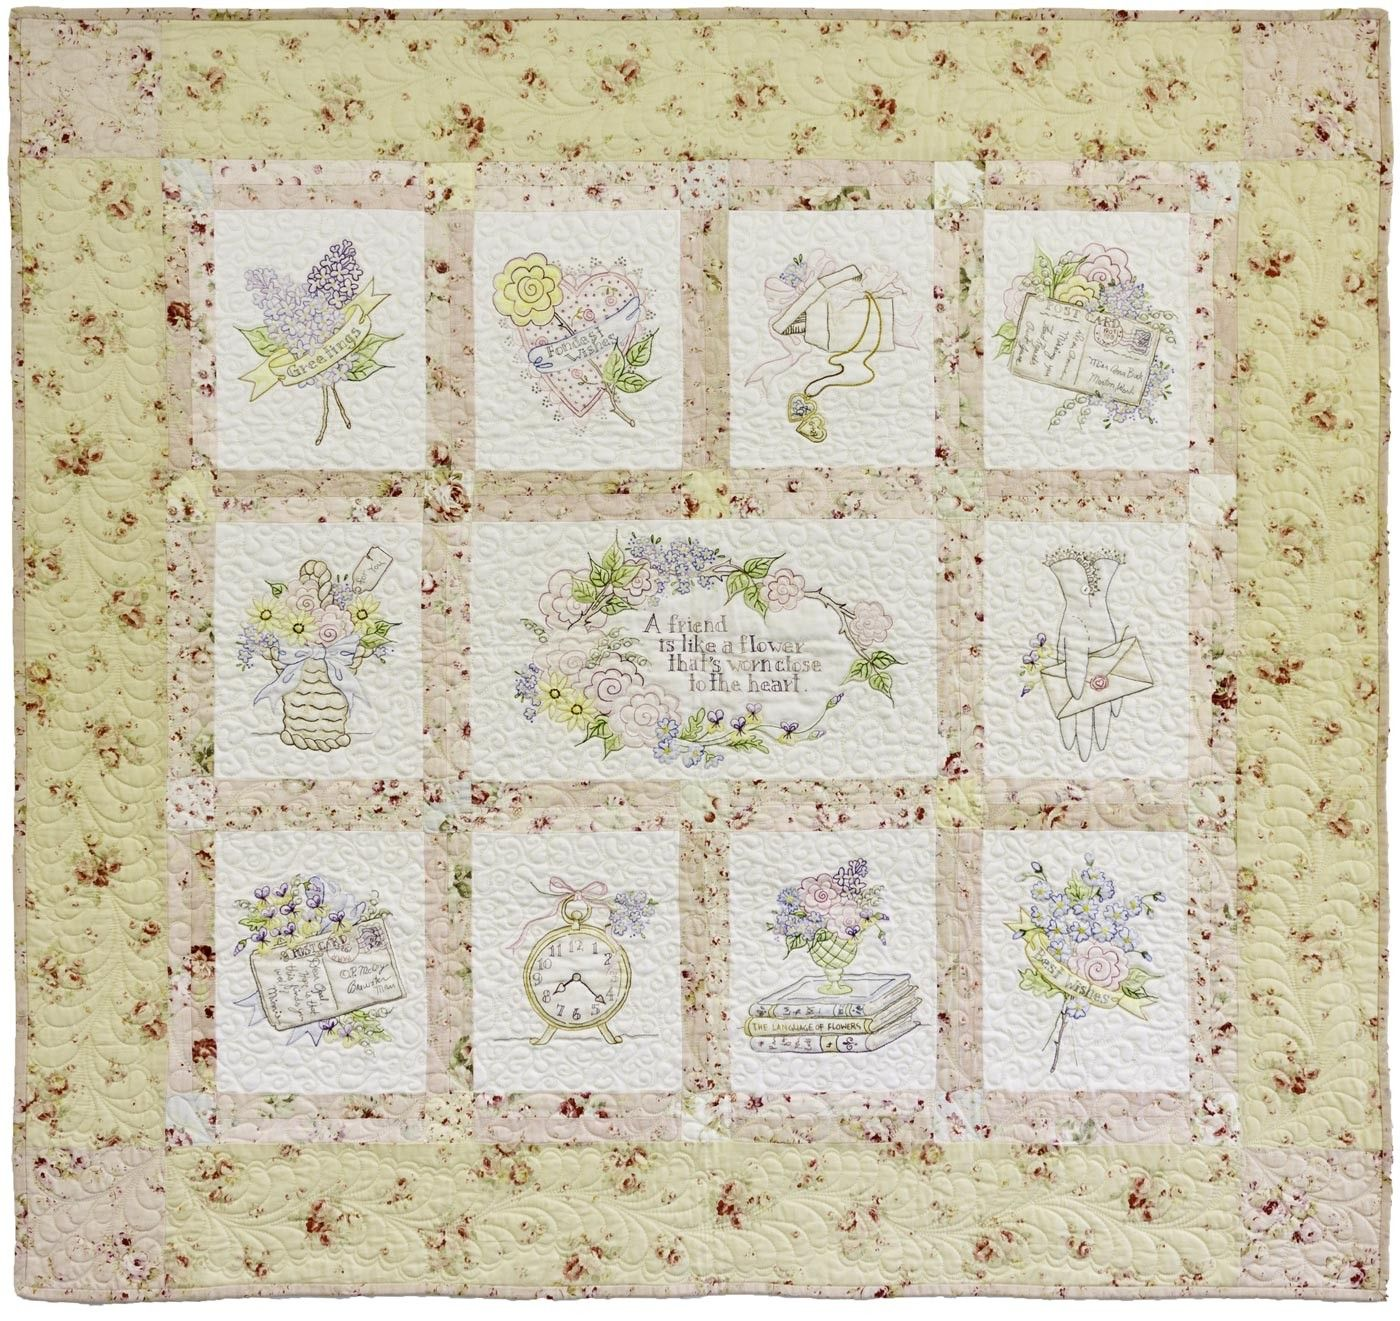 Fondest Regards by Crabapple Hill. | Crabapple hill embroidery ...